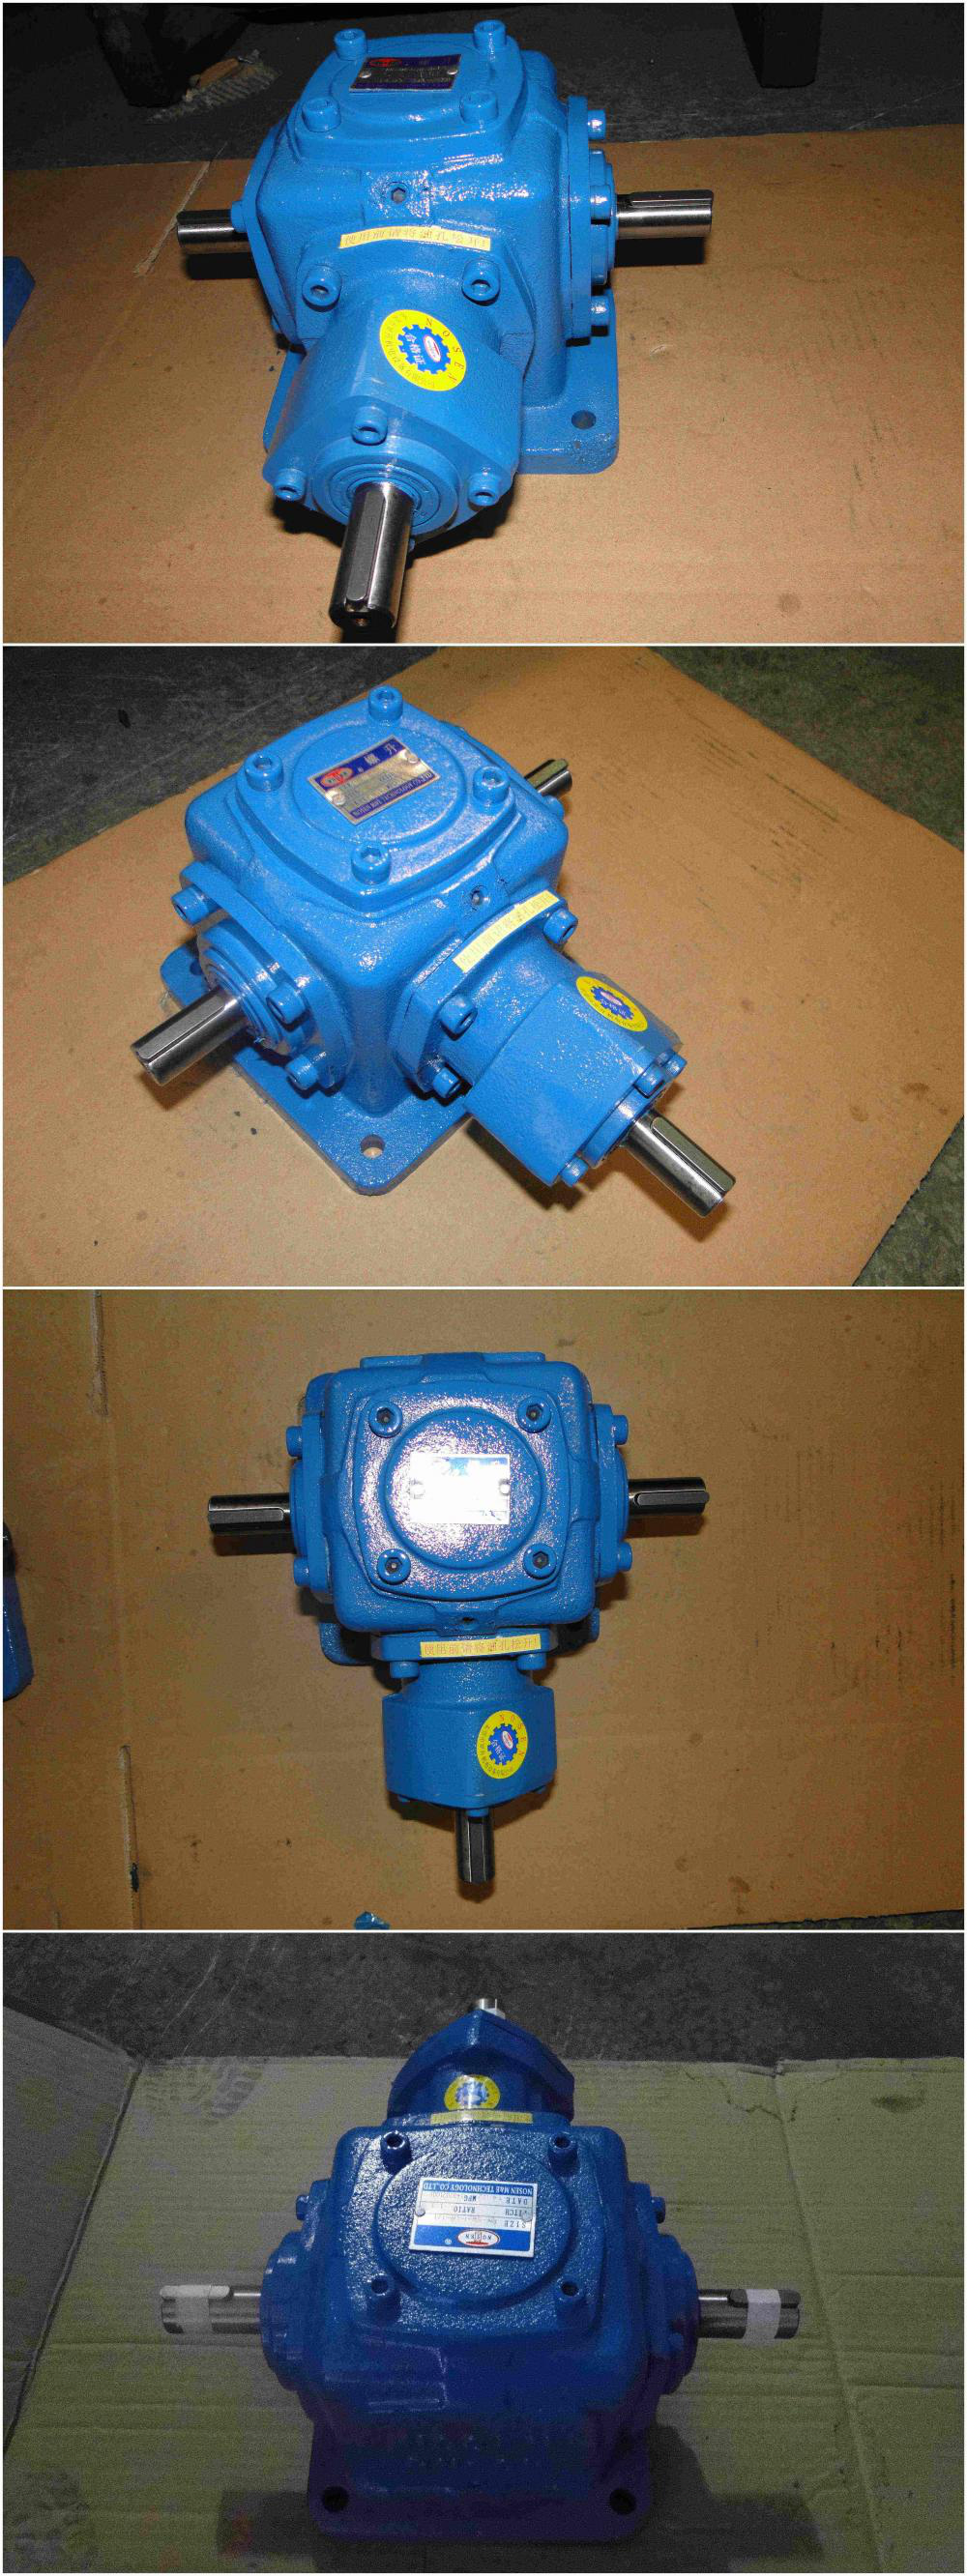 Nosen Power Transmission Spiral Gear QT400 House Gearbox